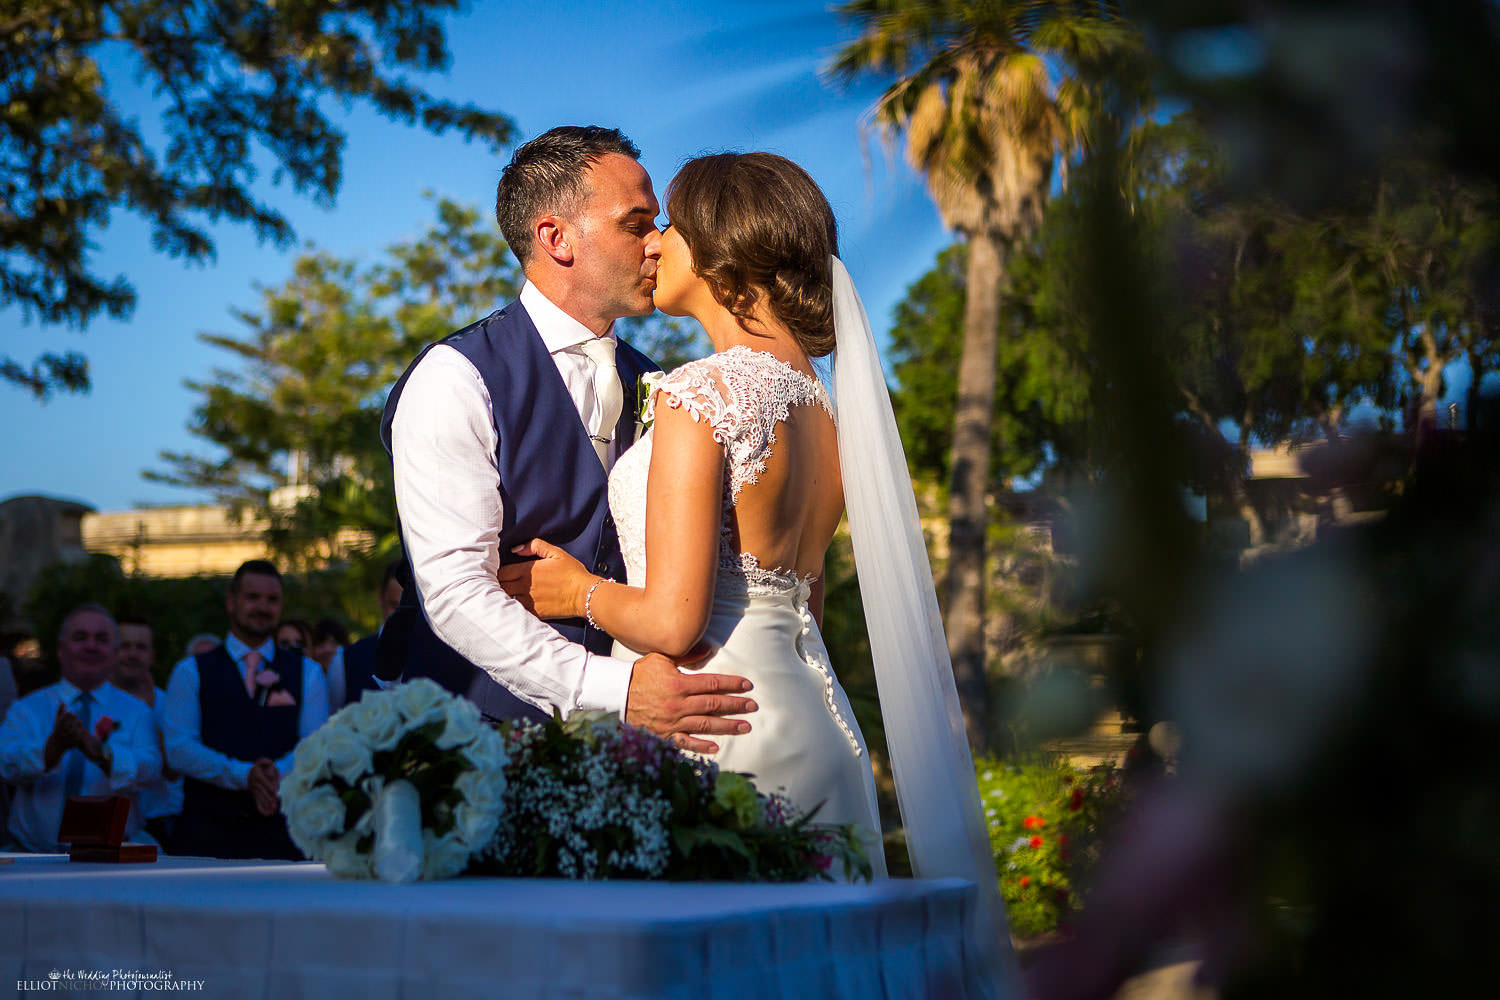 hasband and wife kiss for the frist time in the gardens of Villa Bologna, Malta.